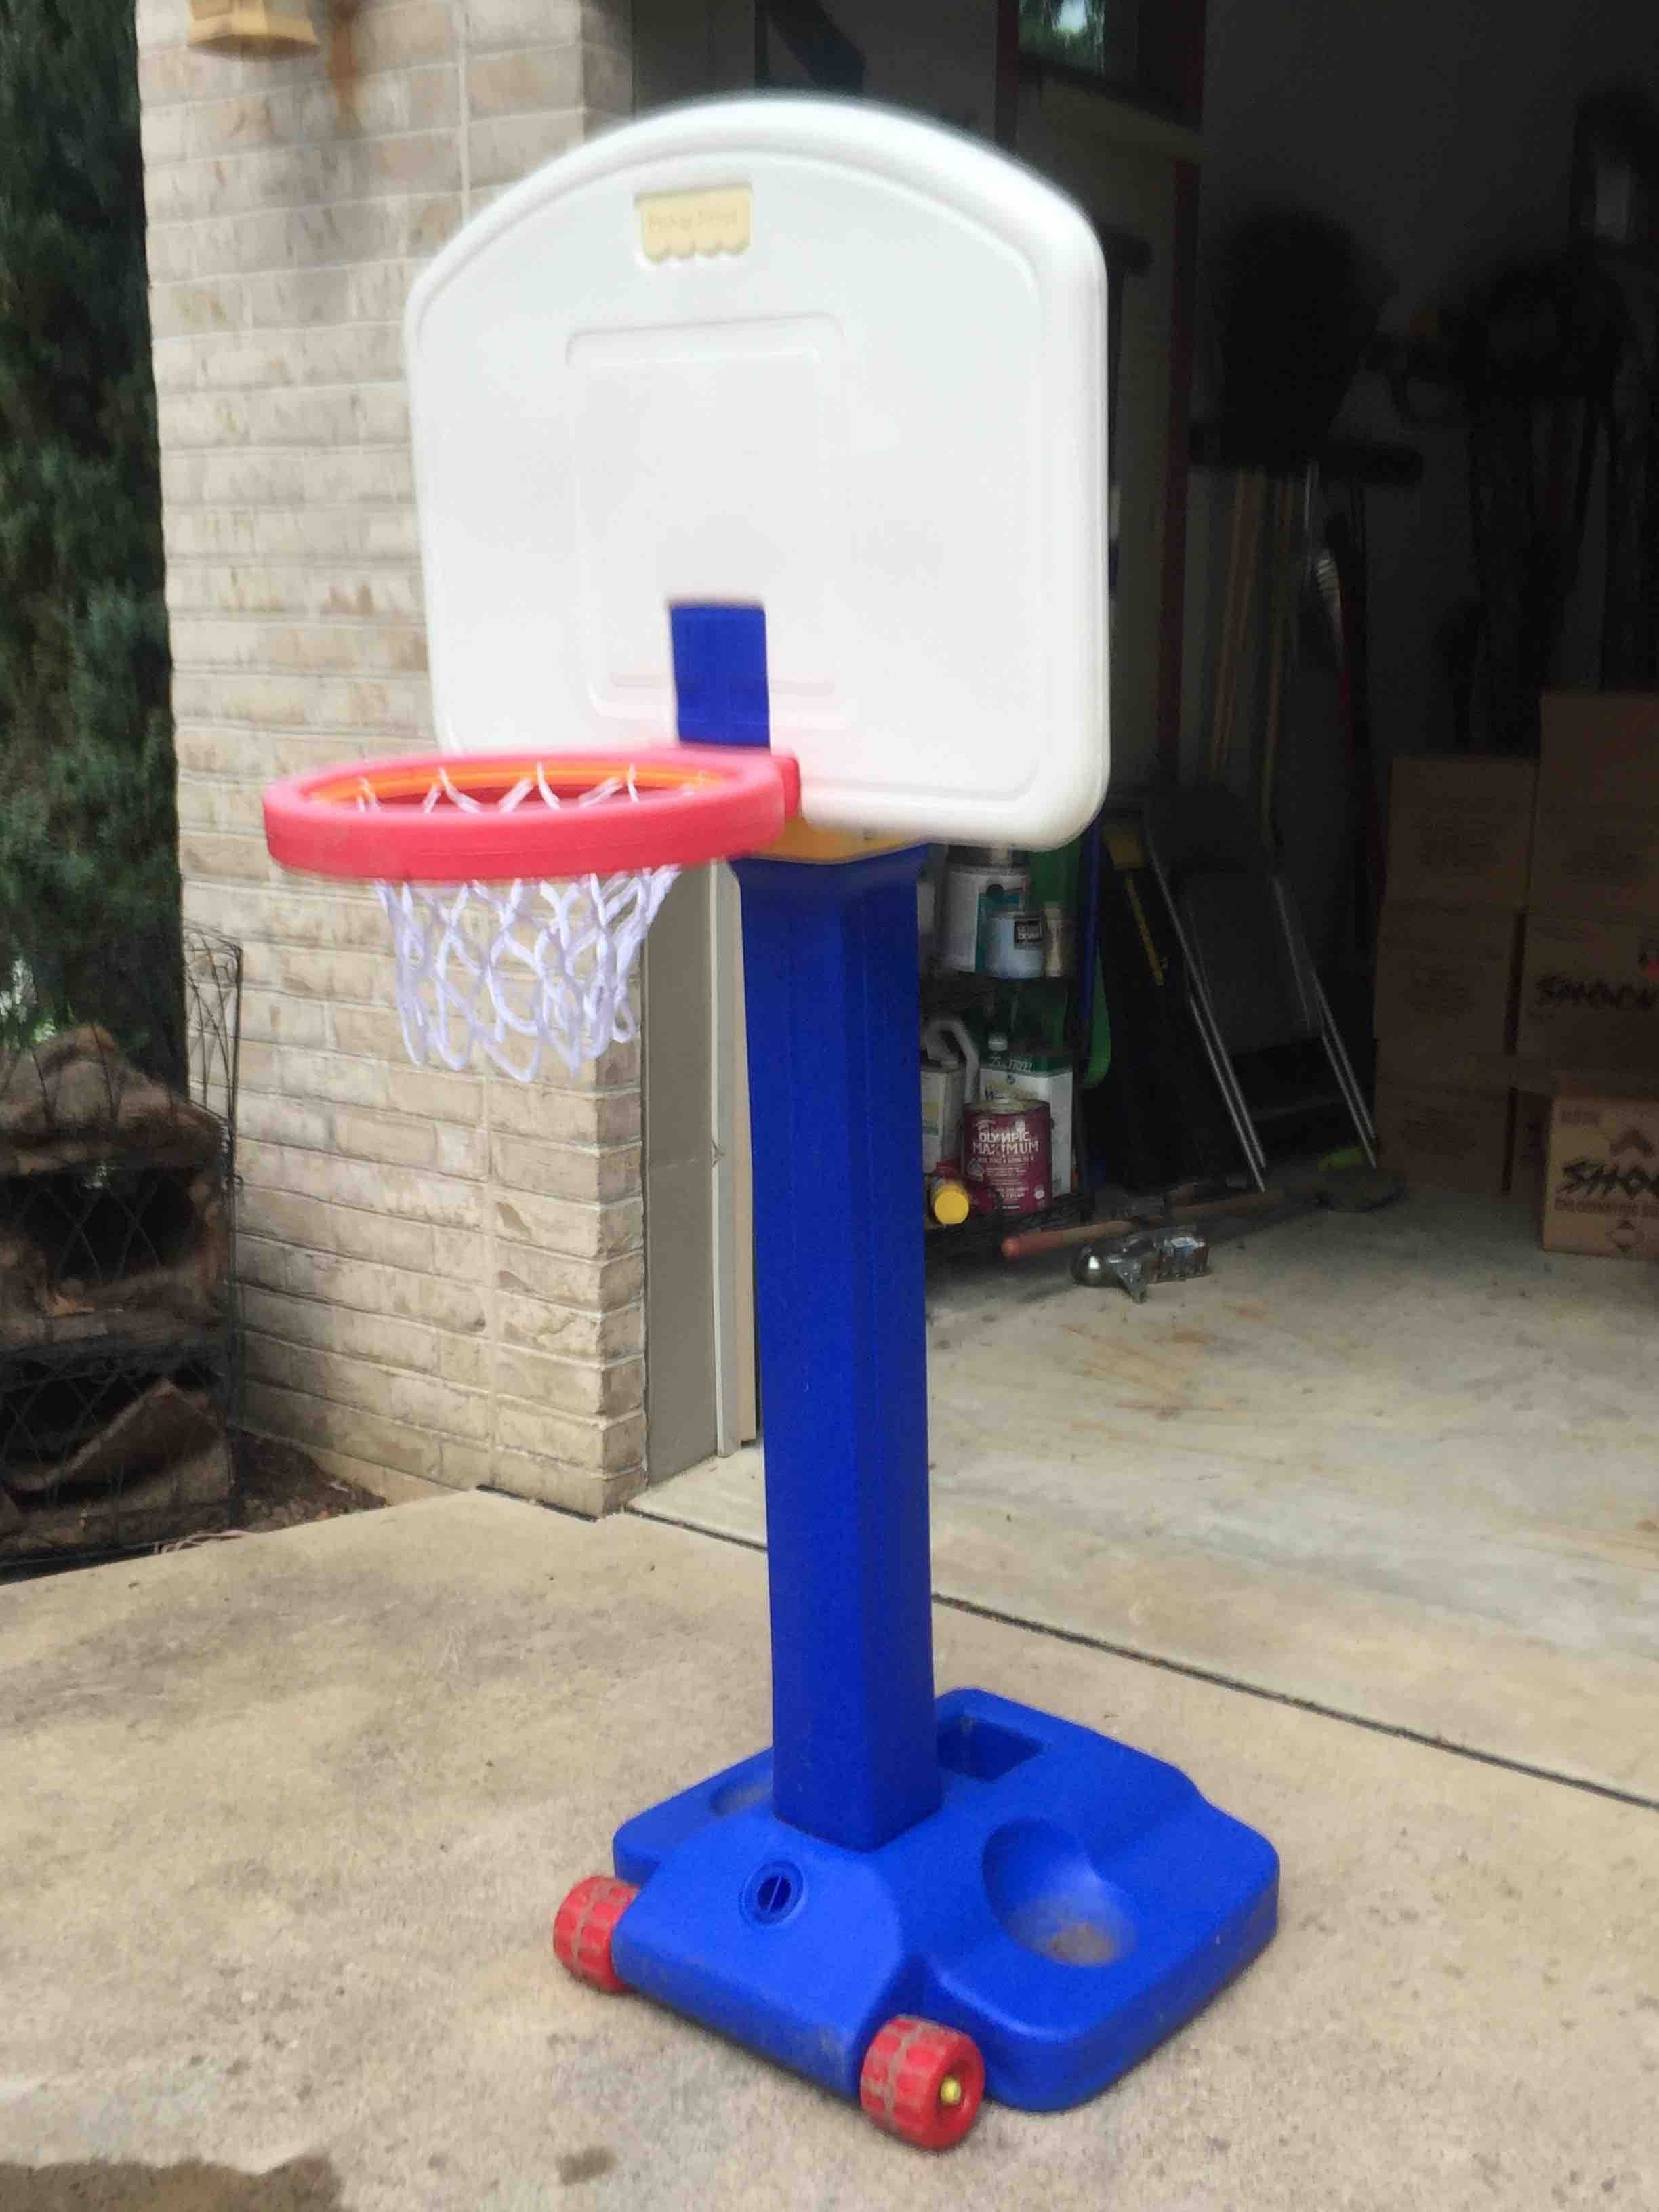 kids Basketball Hoop in JoshMonica's Garage Sale Erie, PA ... on erie campgrounds, erie tattoo, erie store, erie hotels, erie watershed, erie st, erie bay, erie tall ships celebration, erie new york night, erie sign, erie landscape, erie club, erie port authority, erie park, erie bayfront convention center staff, erie planetarium, erie game, erie weddings, erie roar on the shore, erie manufacturing,